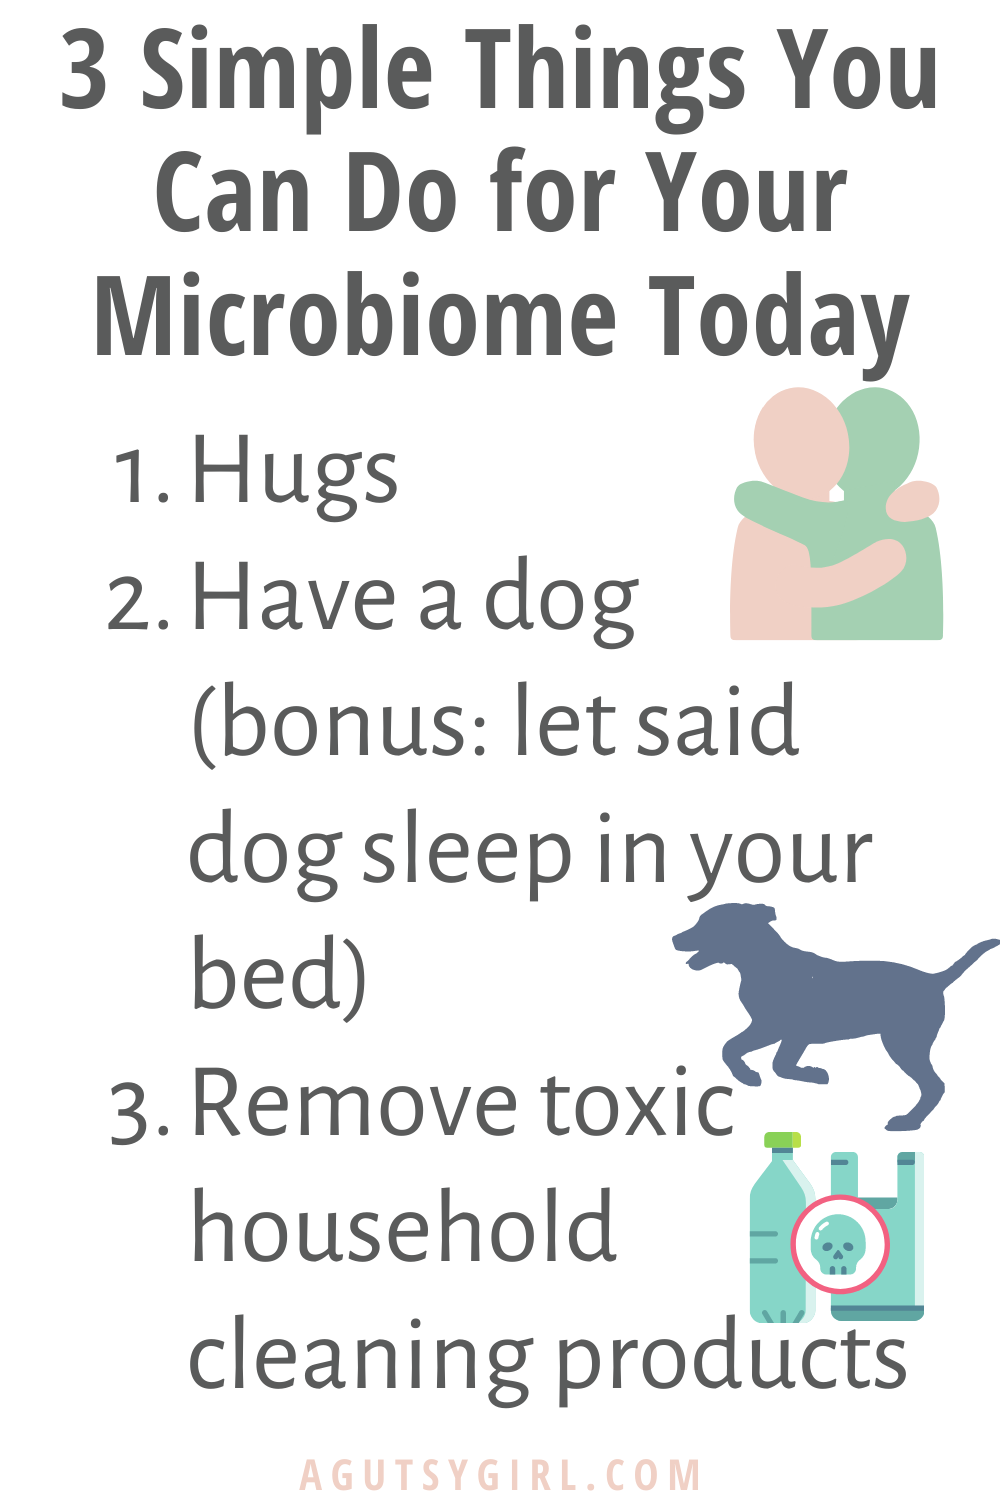 3 Simple Things You Can Do for Your Microbiome Today agutsygirl.com #microbiome #guthealth